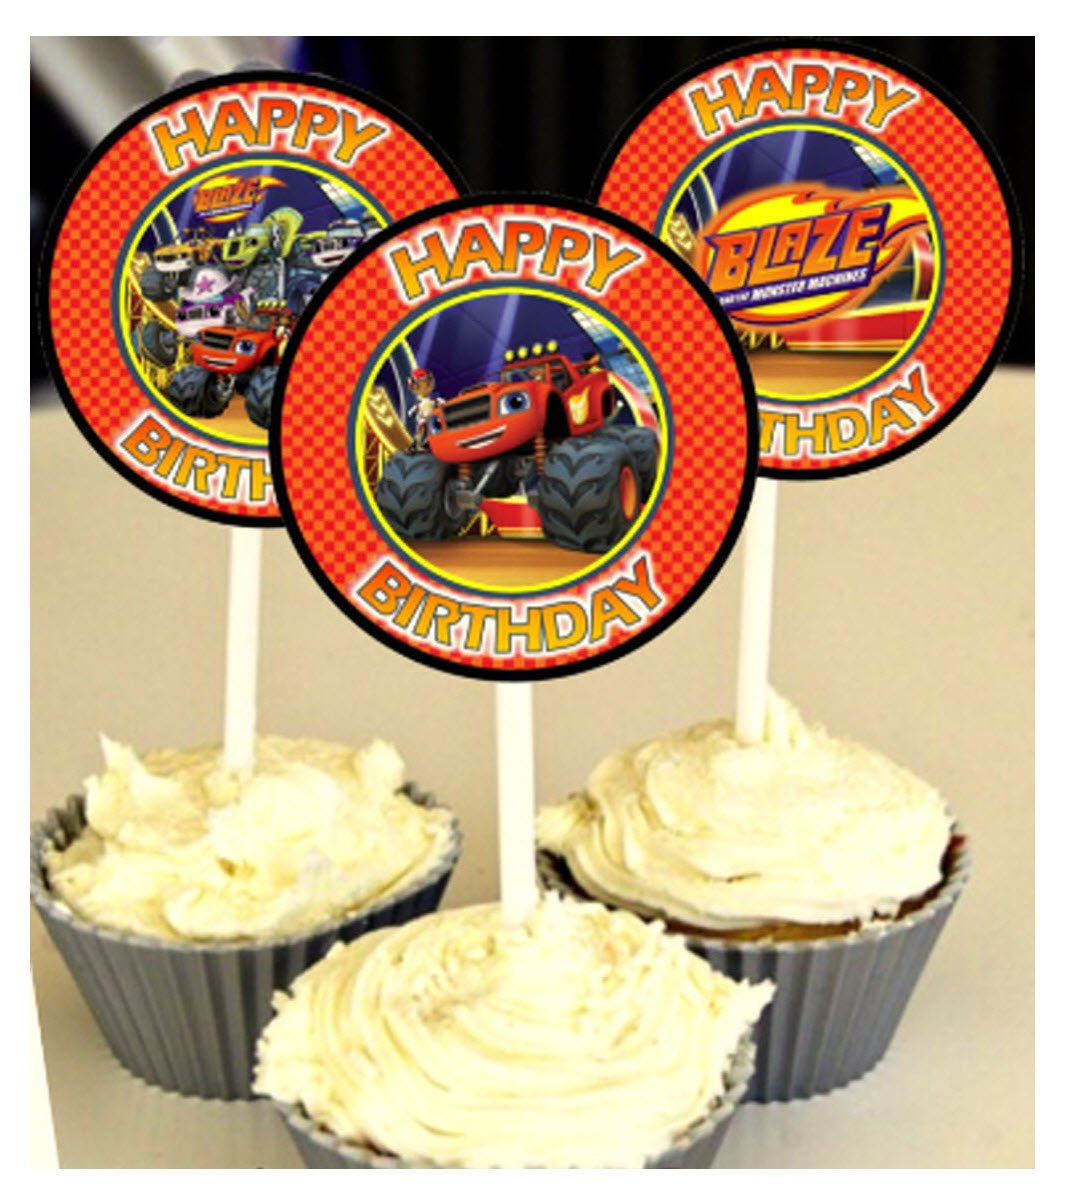 12 Happy Birthday BLAZE AND THE MONSTER MACHINES Inspired Party Picks, Cupcake Picks, CupcakeToppers